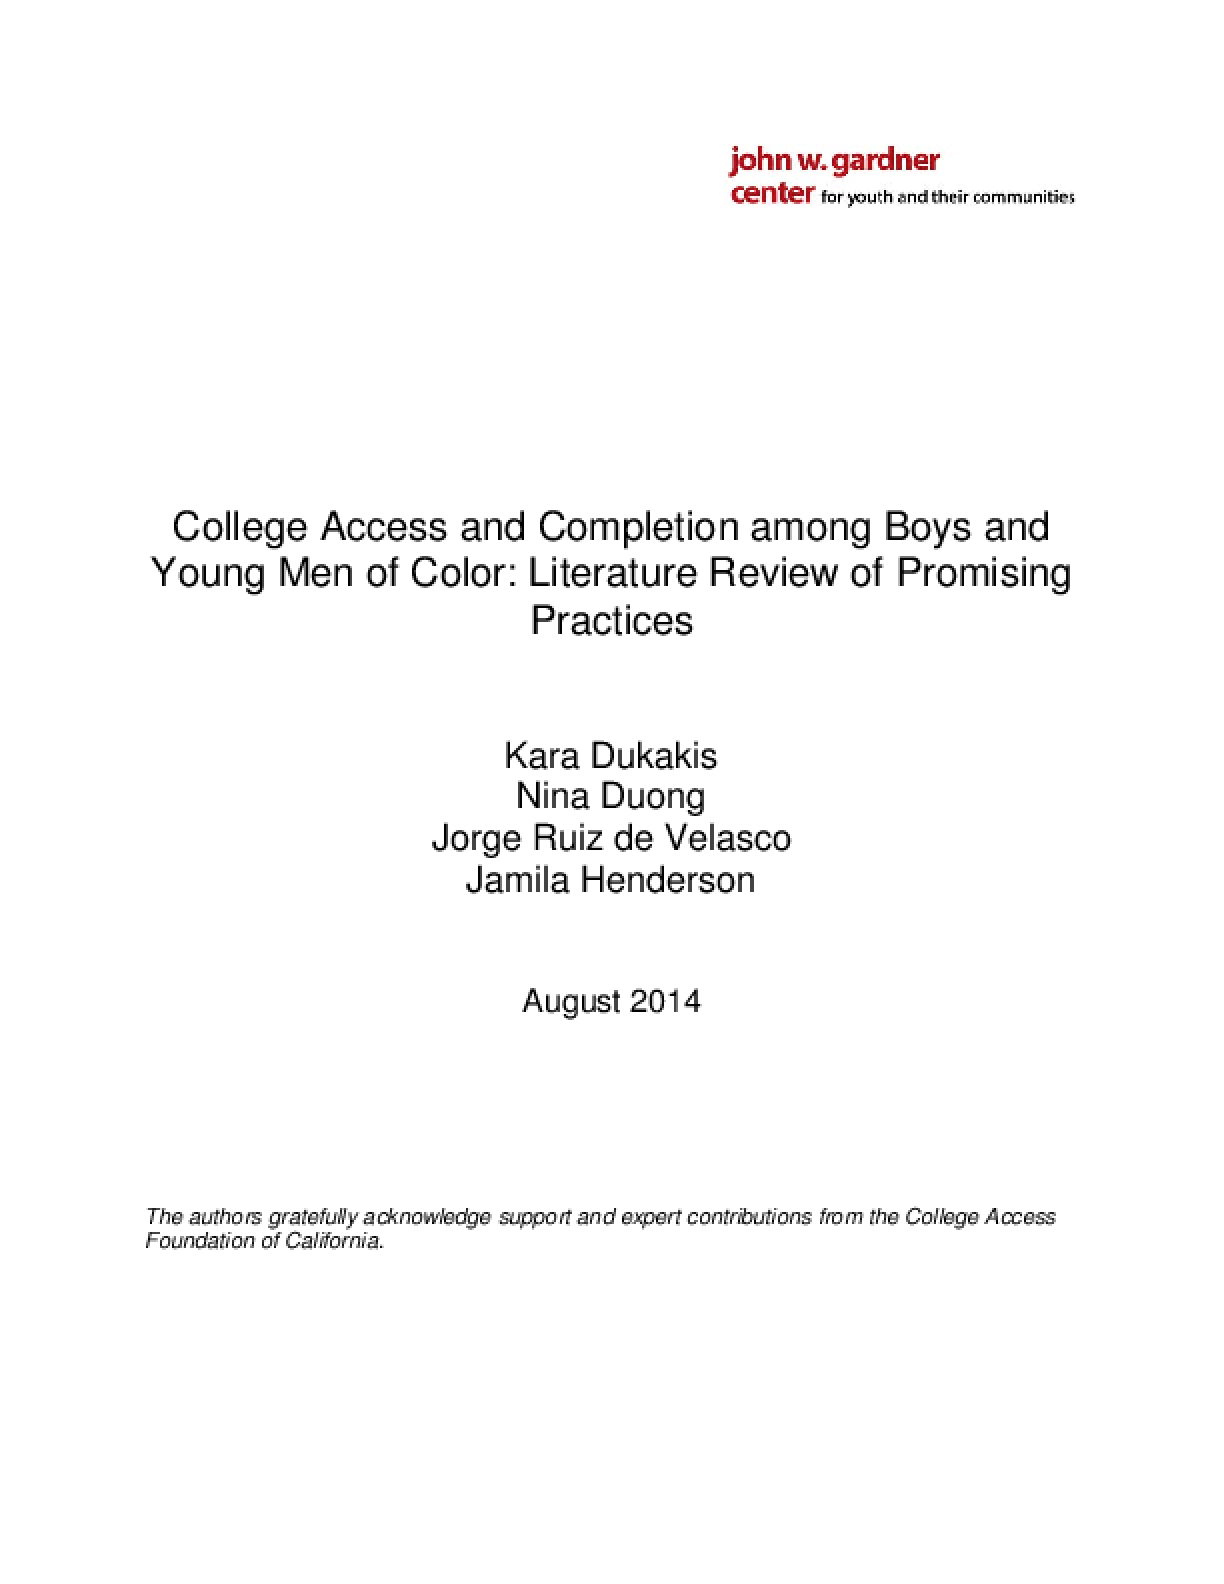 College Access and Completion among Boys and Young Men of Color: Literature Review of Promising Practices